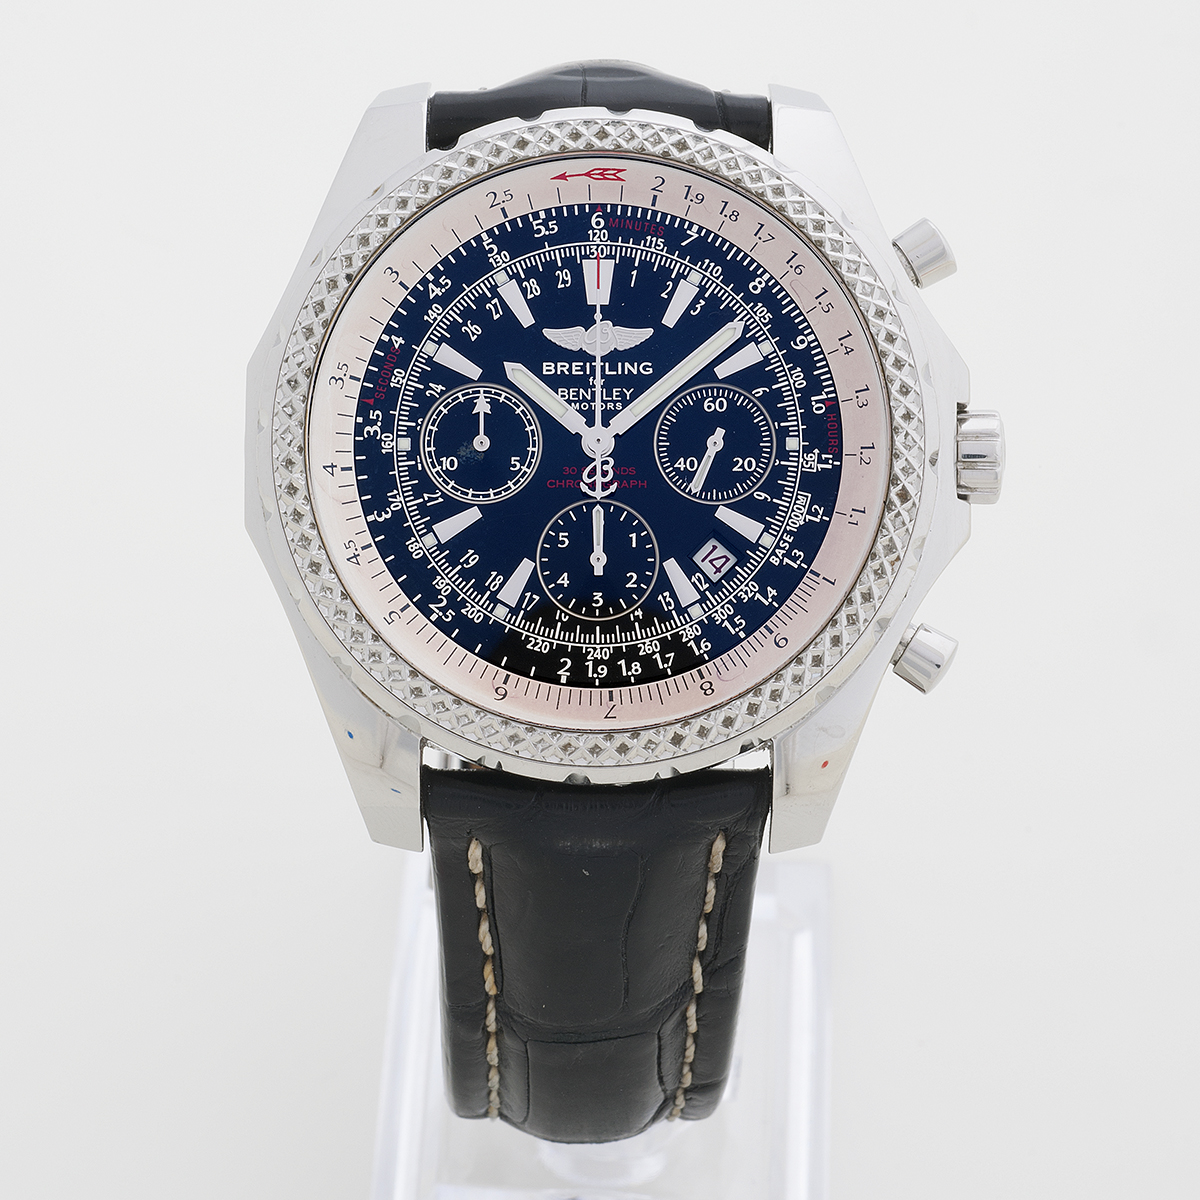 b bp breitling special p chronograph product purple chrono edition bentley motors s dial